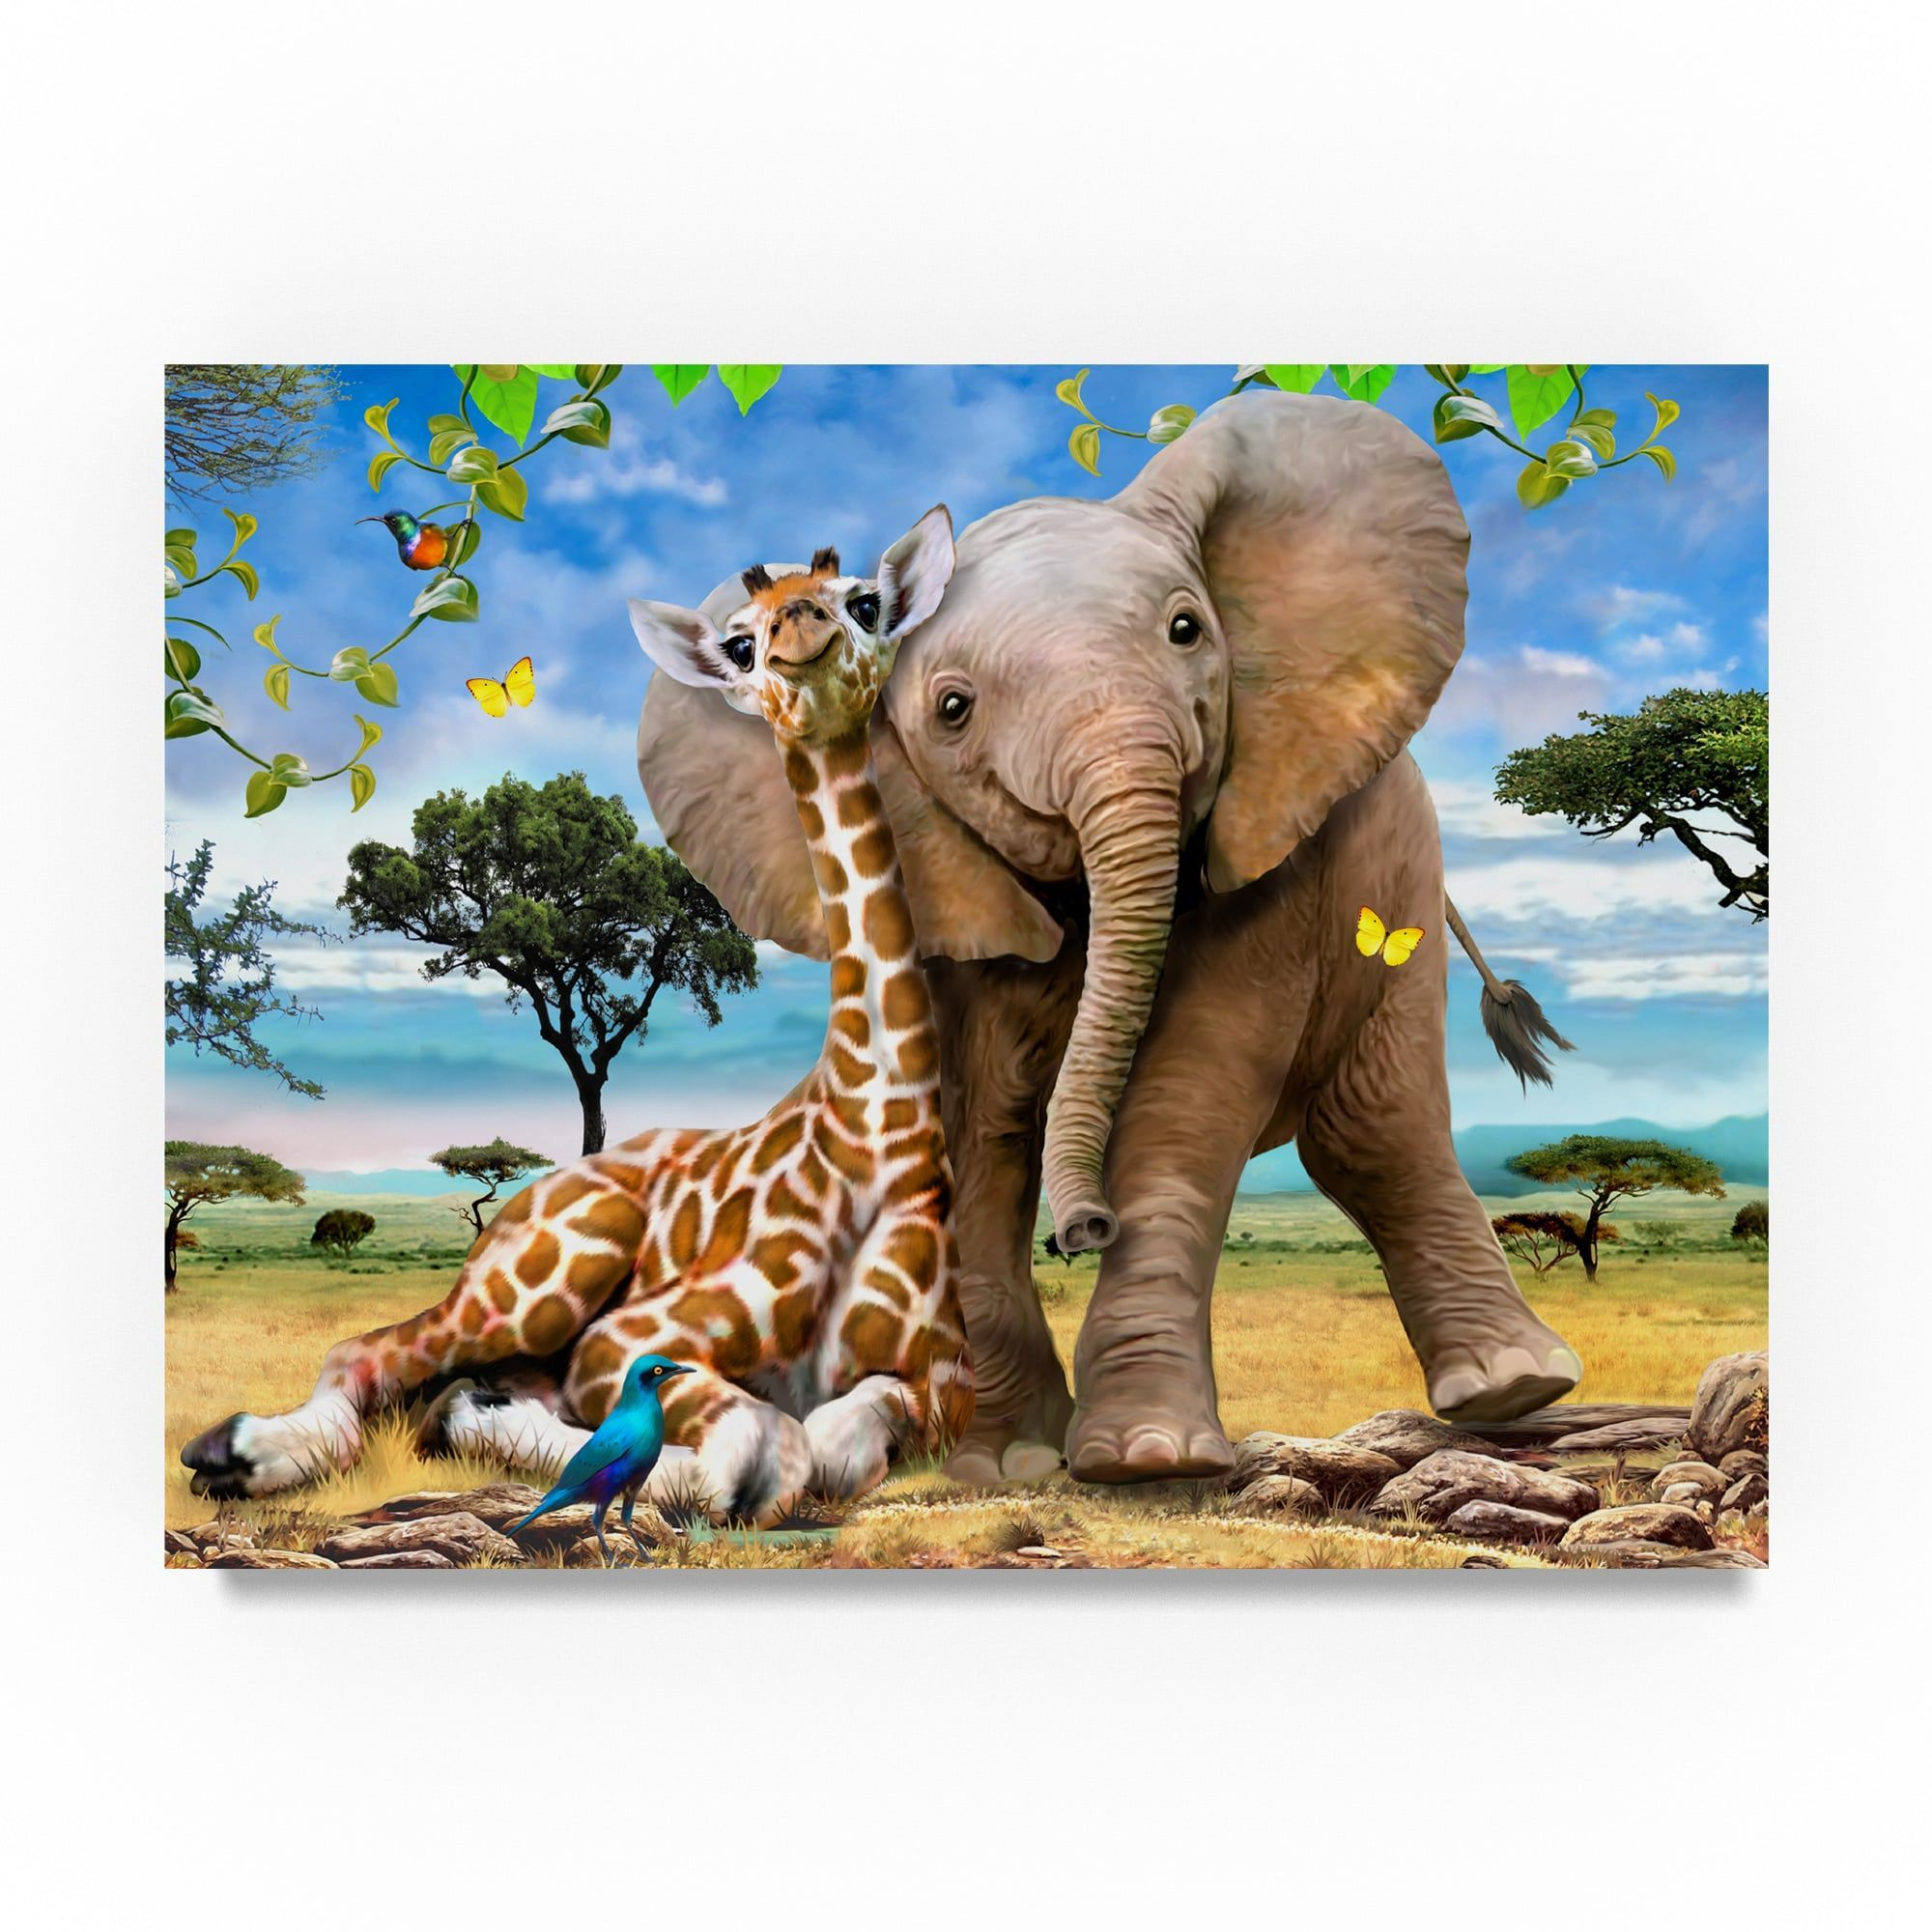 901856fea19 Howard Robinson  Elephants And Giraffes  Canvas Art (24x32 ...